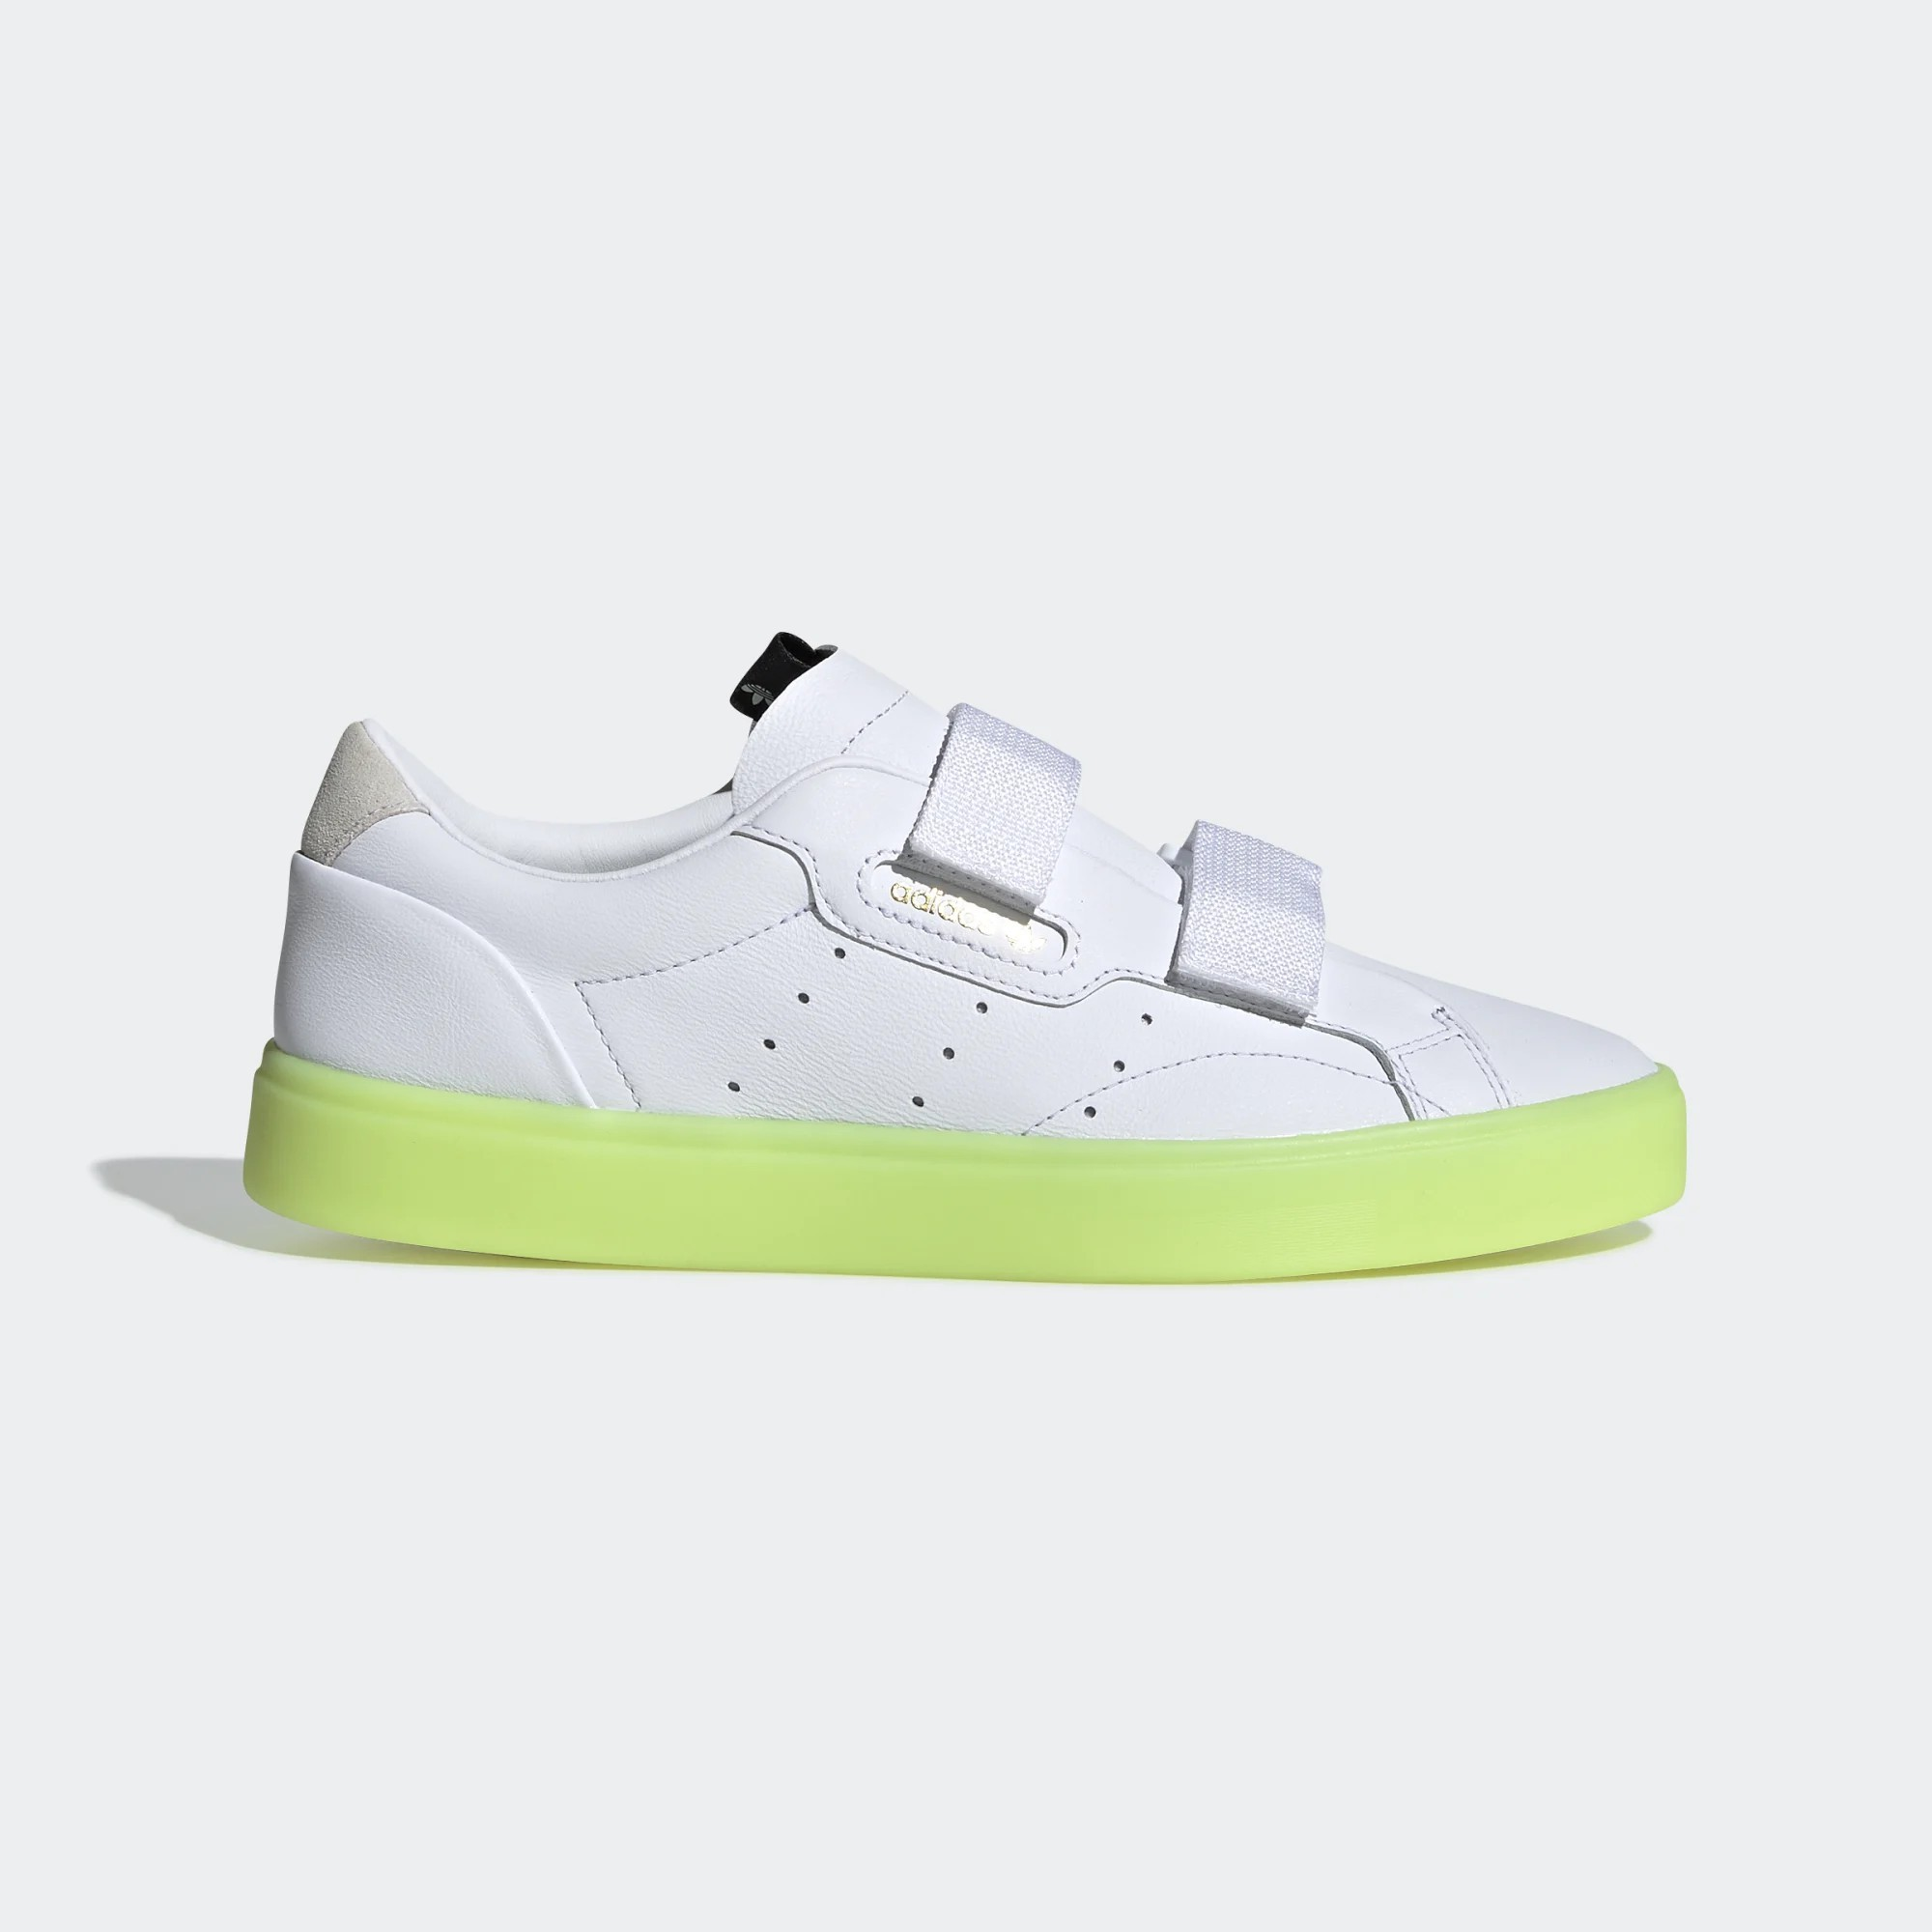 Wmns Sleek Straps 'White Yellow' adidas EE8279